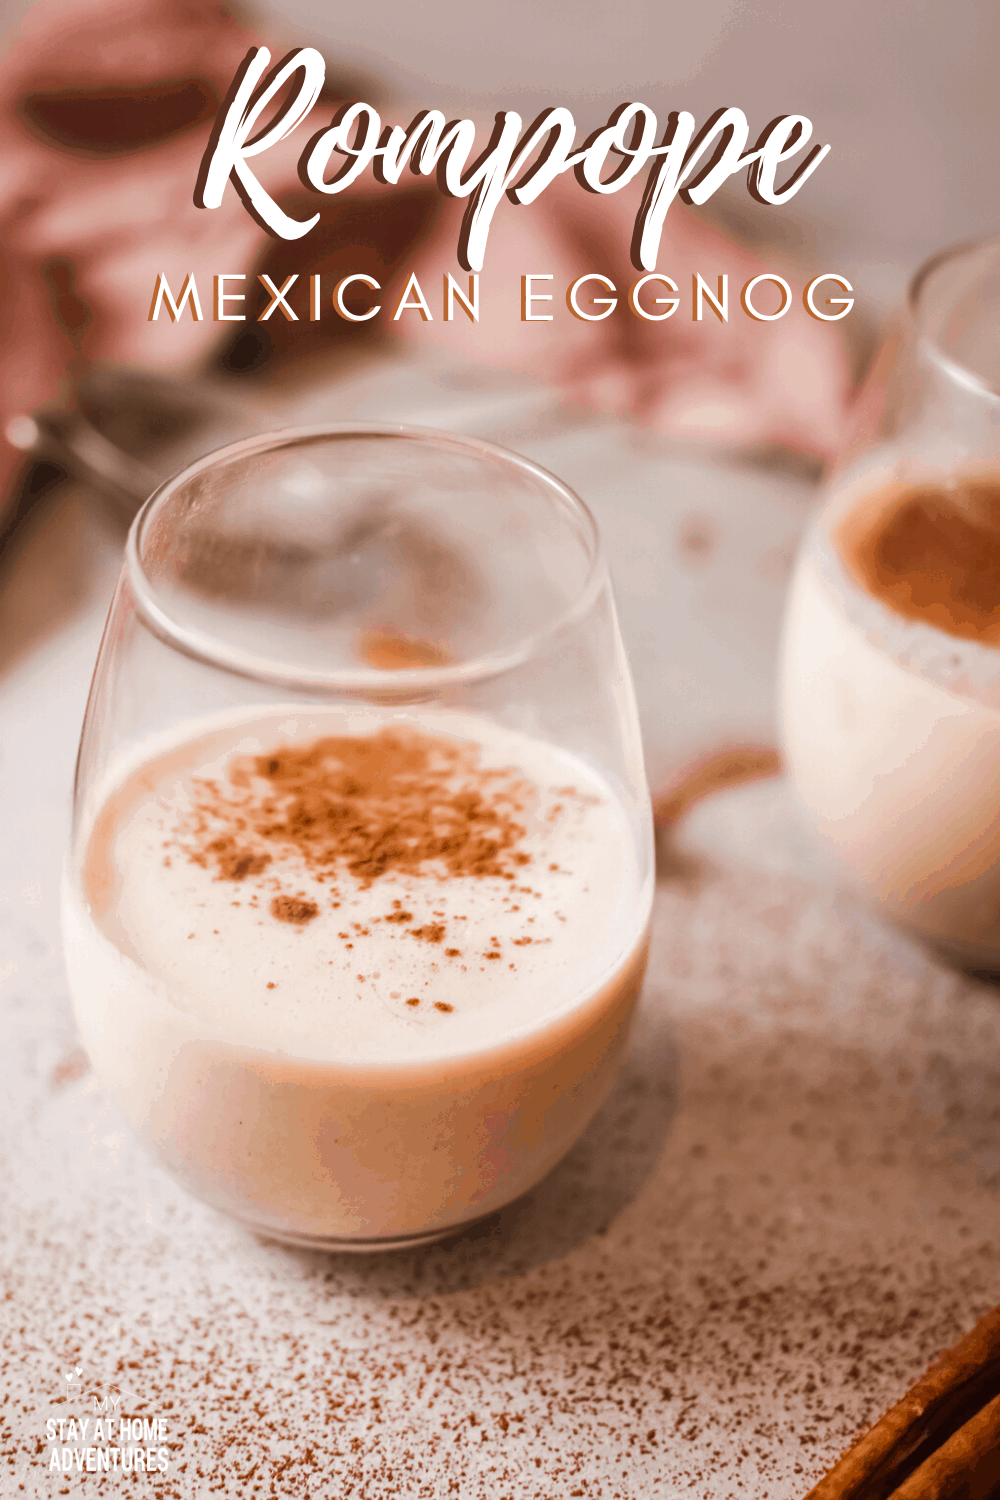 Rompope or Ponche de Huevo is similar to eggnog that is creamy and flavorful and popular in holidays made with eggs, rum, and spice. #mexicanrecipe #mexicandrink #holidaydrink #rompope #eggnog via @mystayathome